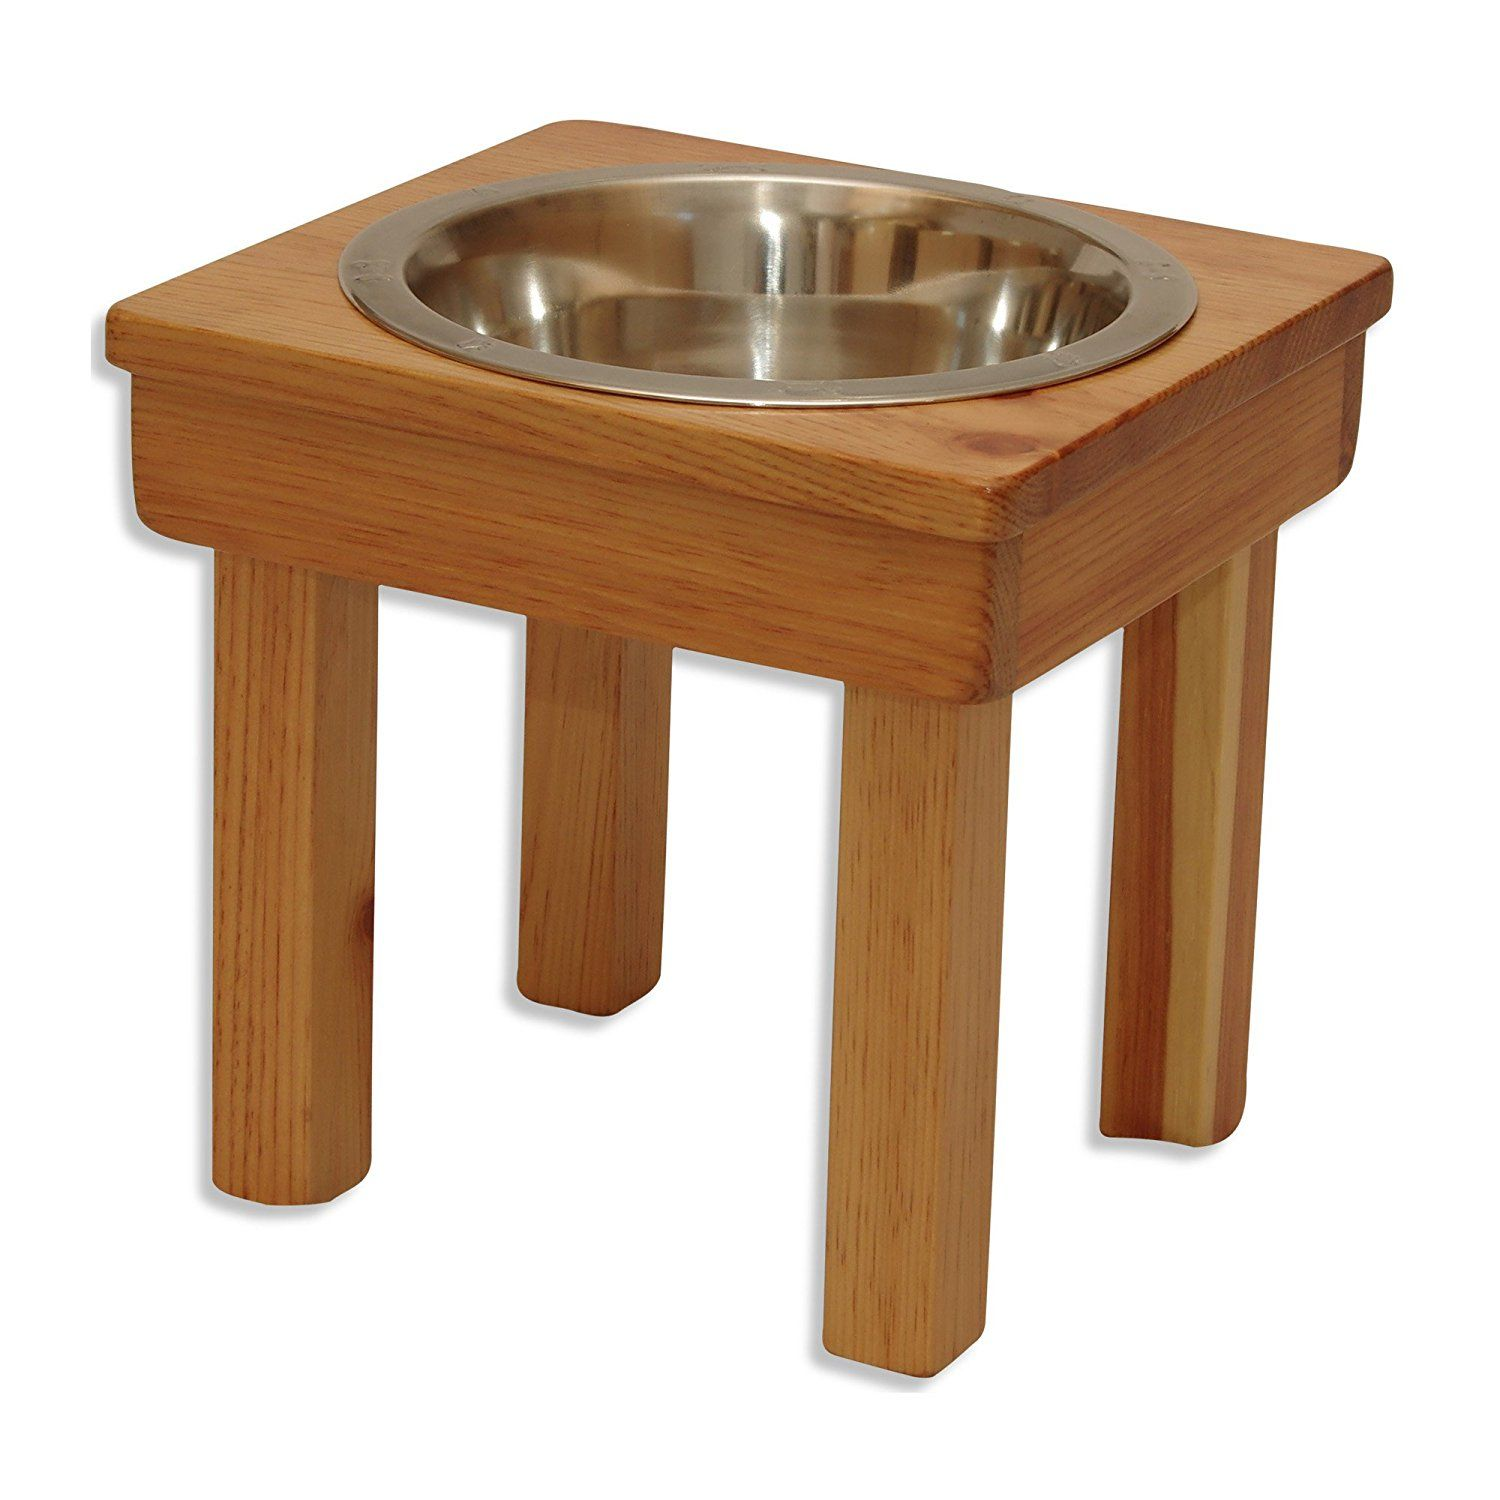 OFTO Raised Dog Bowls Solid Wood Cat dish and Dog Bowl Stands with